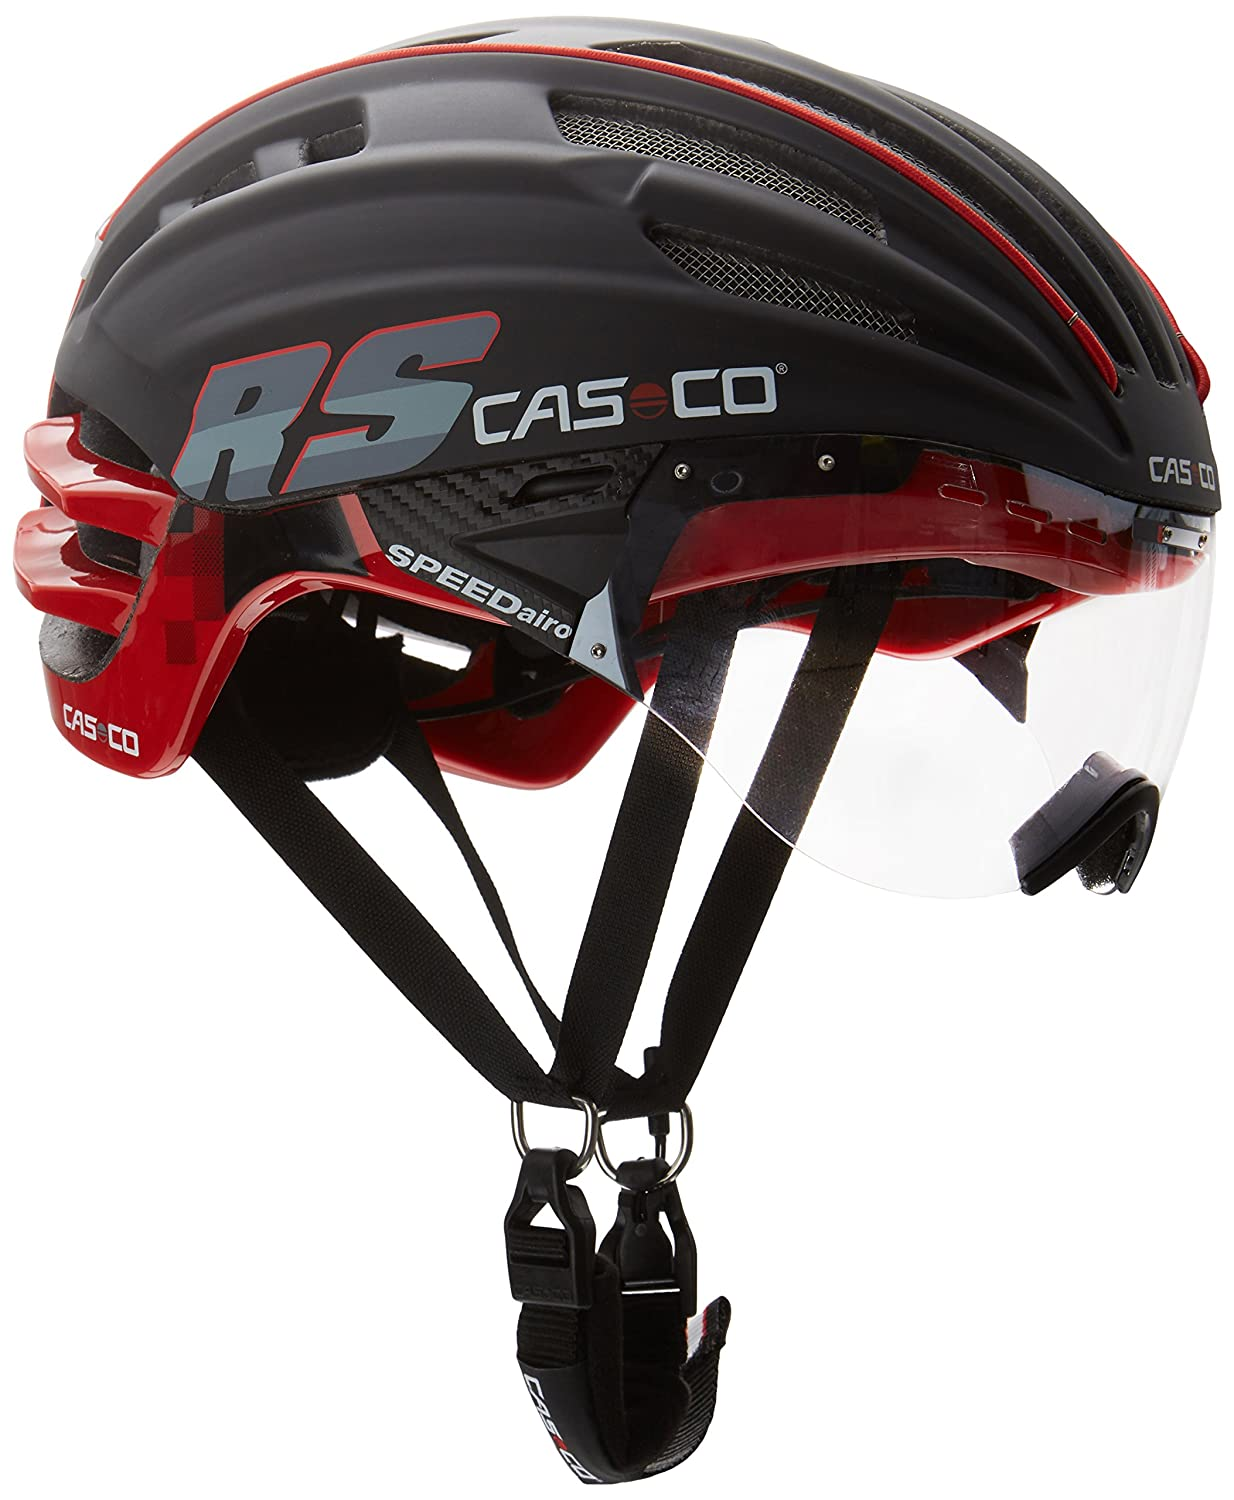 Casco Helm Speedairo RS Ciclismo con Pantalla incluida, Color ...